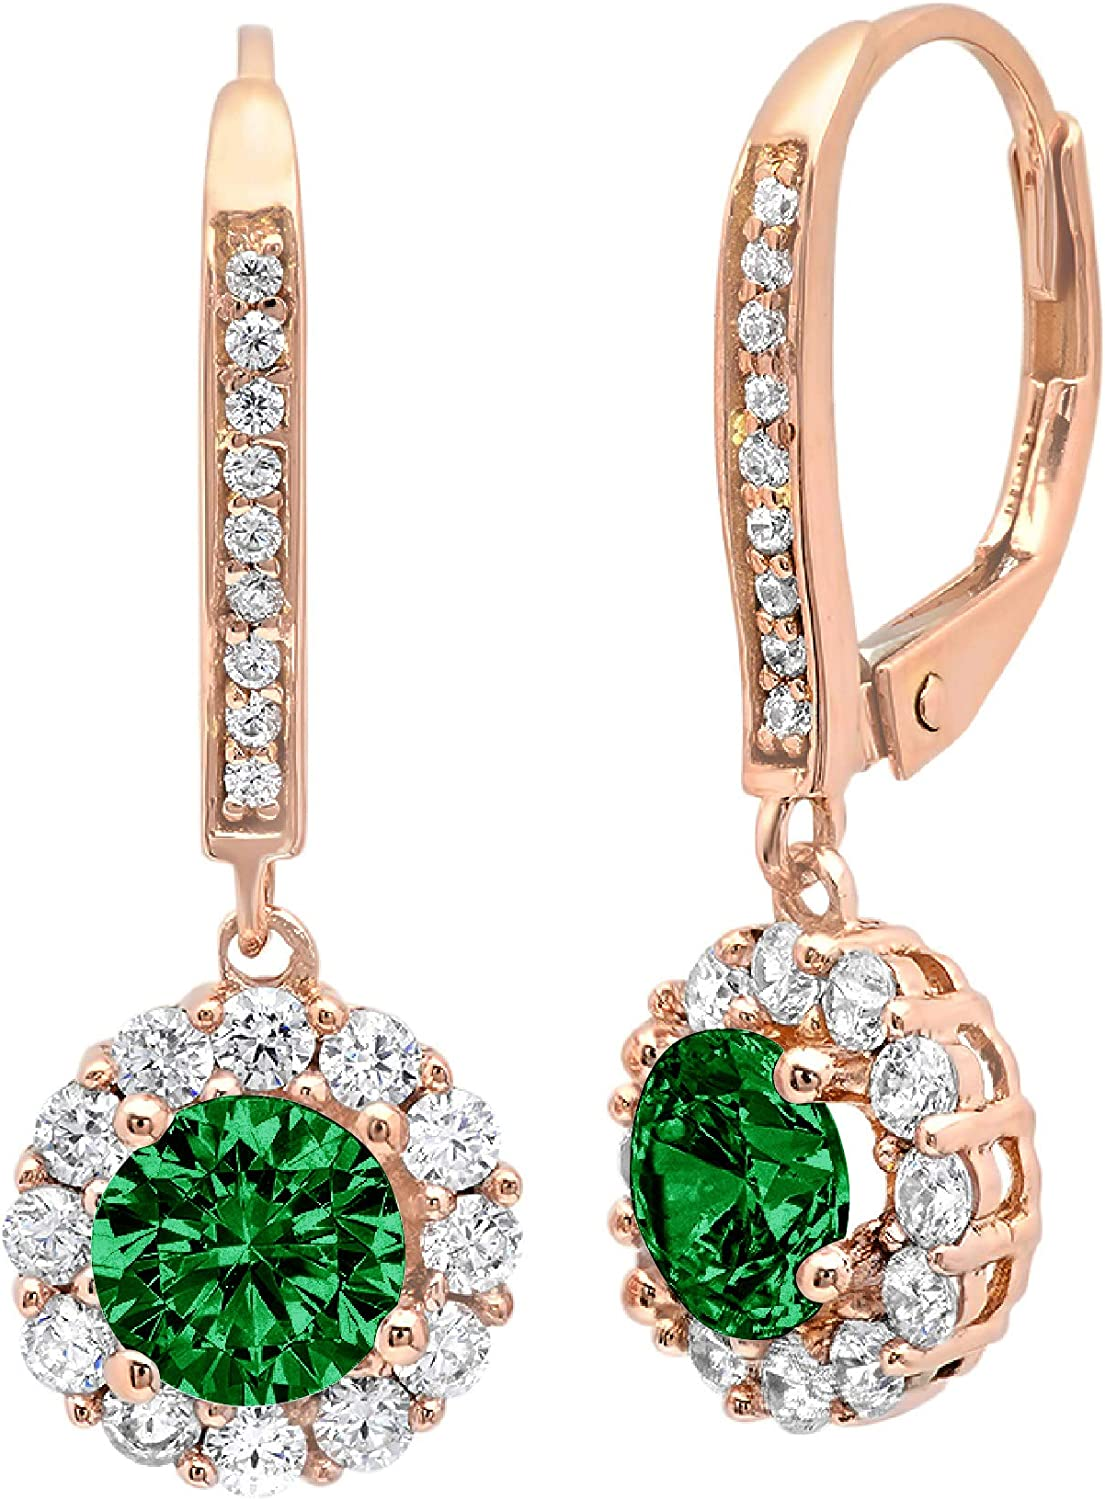 3.55 ct Brilliant Round Cut Halo Solitaire Flawless Genuine Simulated CZ Green Emerald Gemstone VVS1 Ideal Pair of Leverback Drop Dangle Designer Earrings Solid 14k Rose Pink Gold